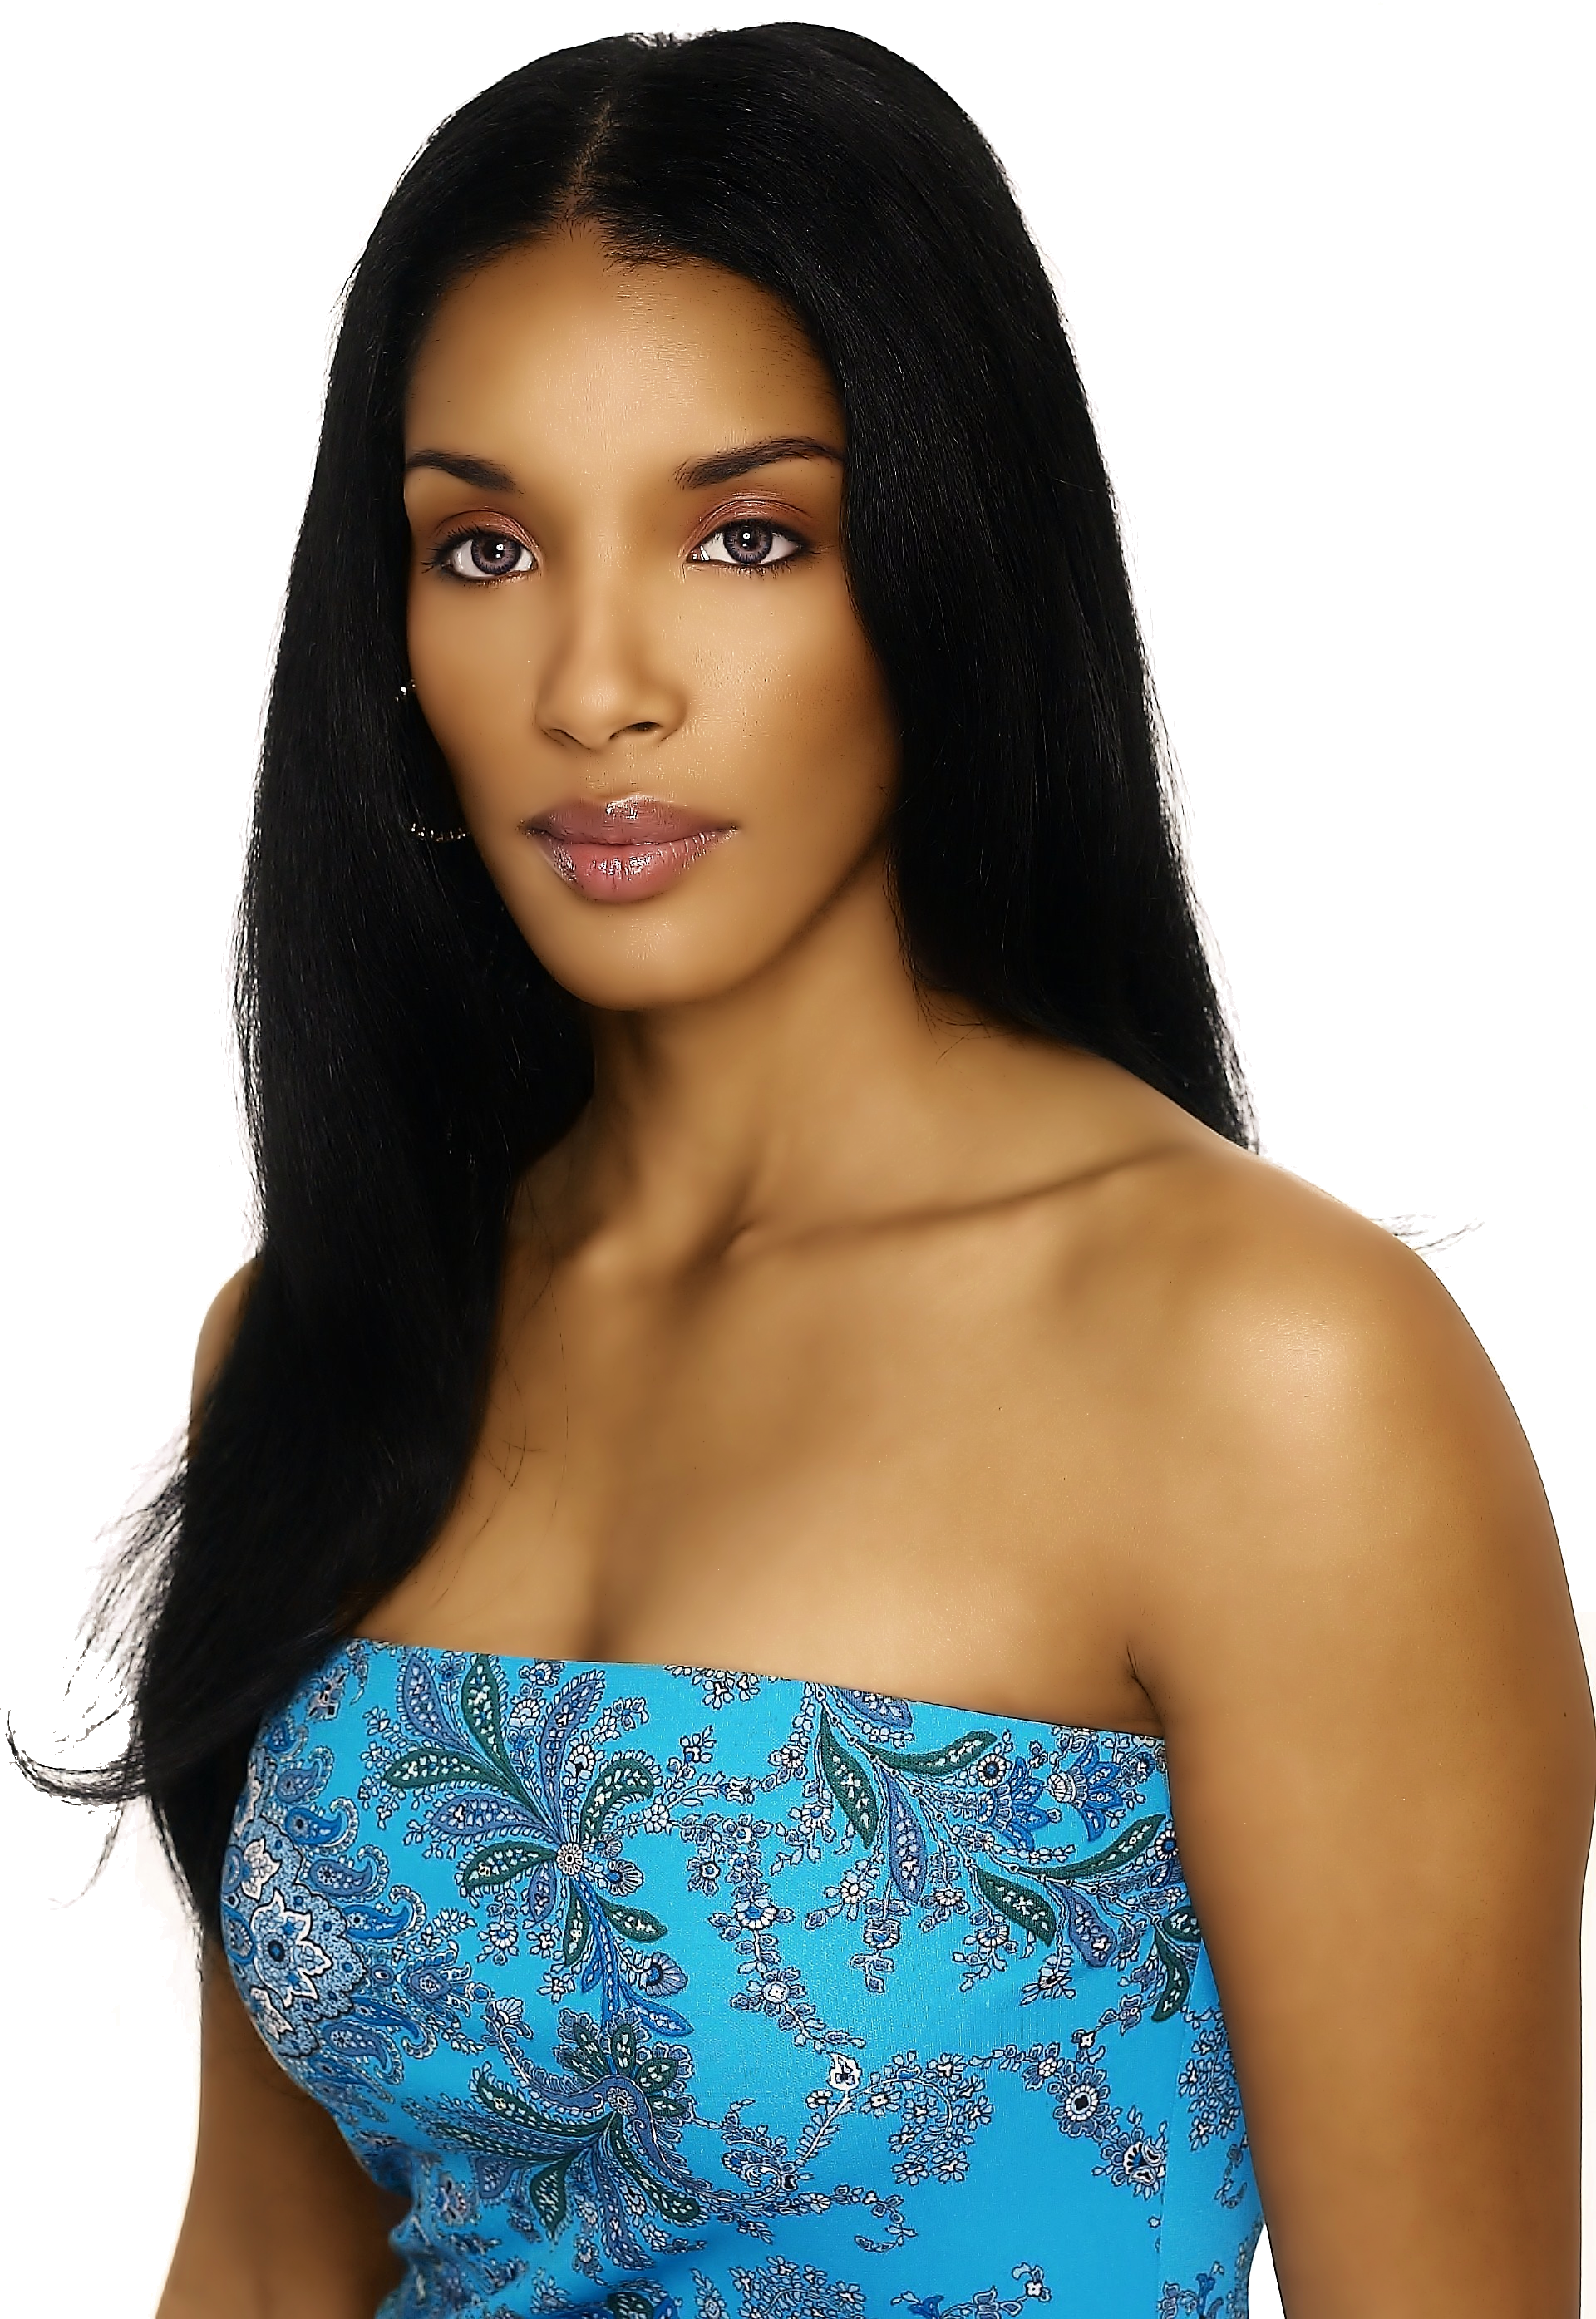 America S Miss World 2017 And Miss Teen World America 2017: America's Next Top Model Wiki